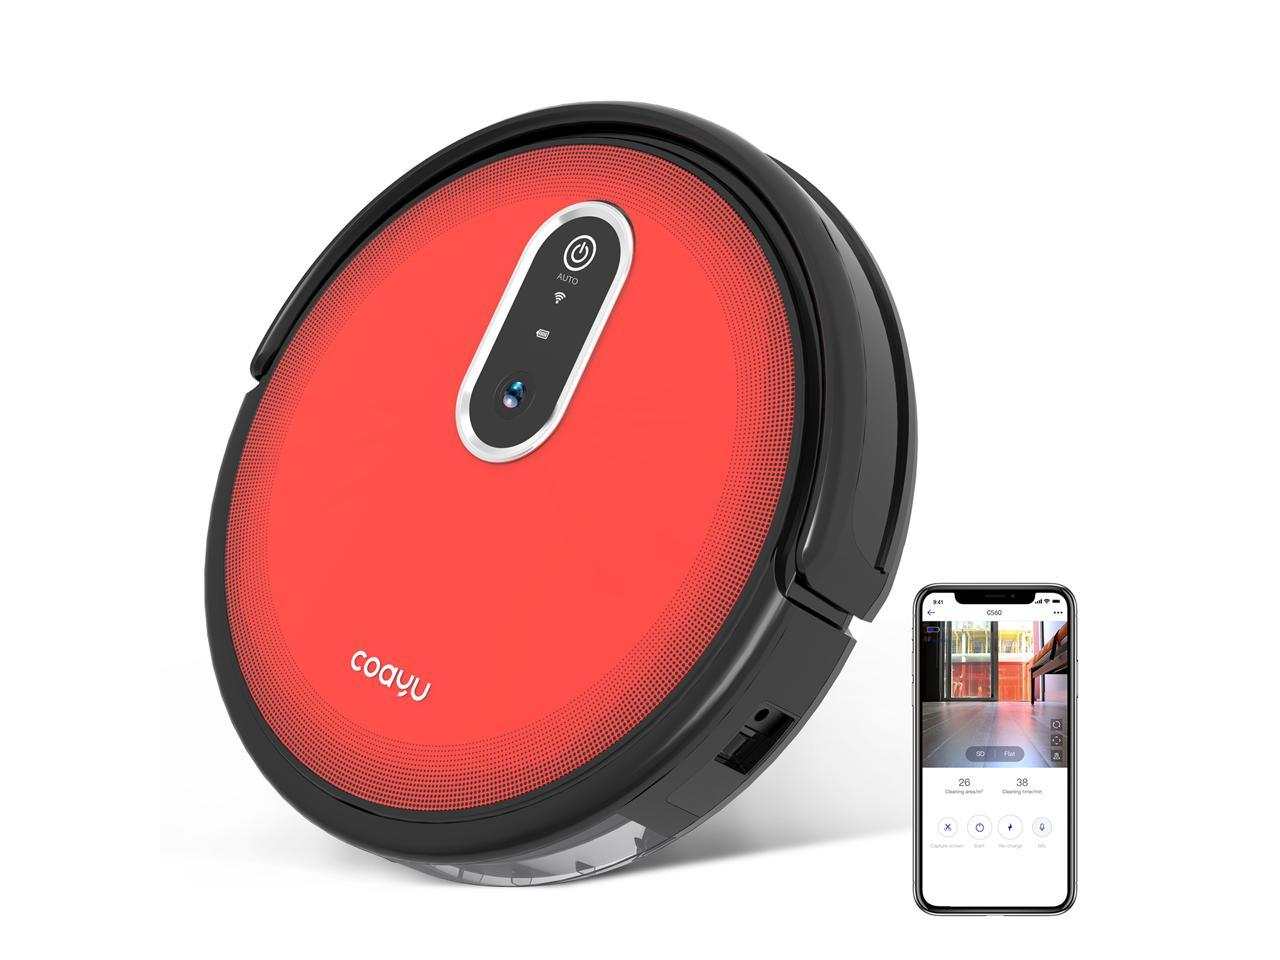 COAYU Wet Robot Vacuum Cleaner with Camera, Wi-Fi & App Control